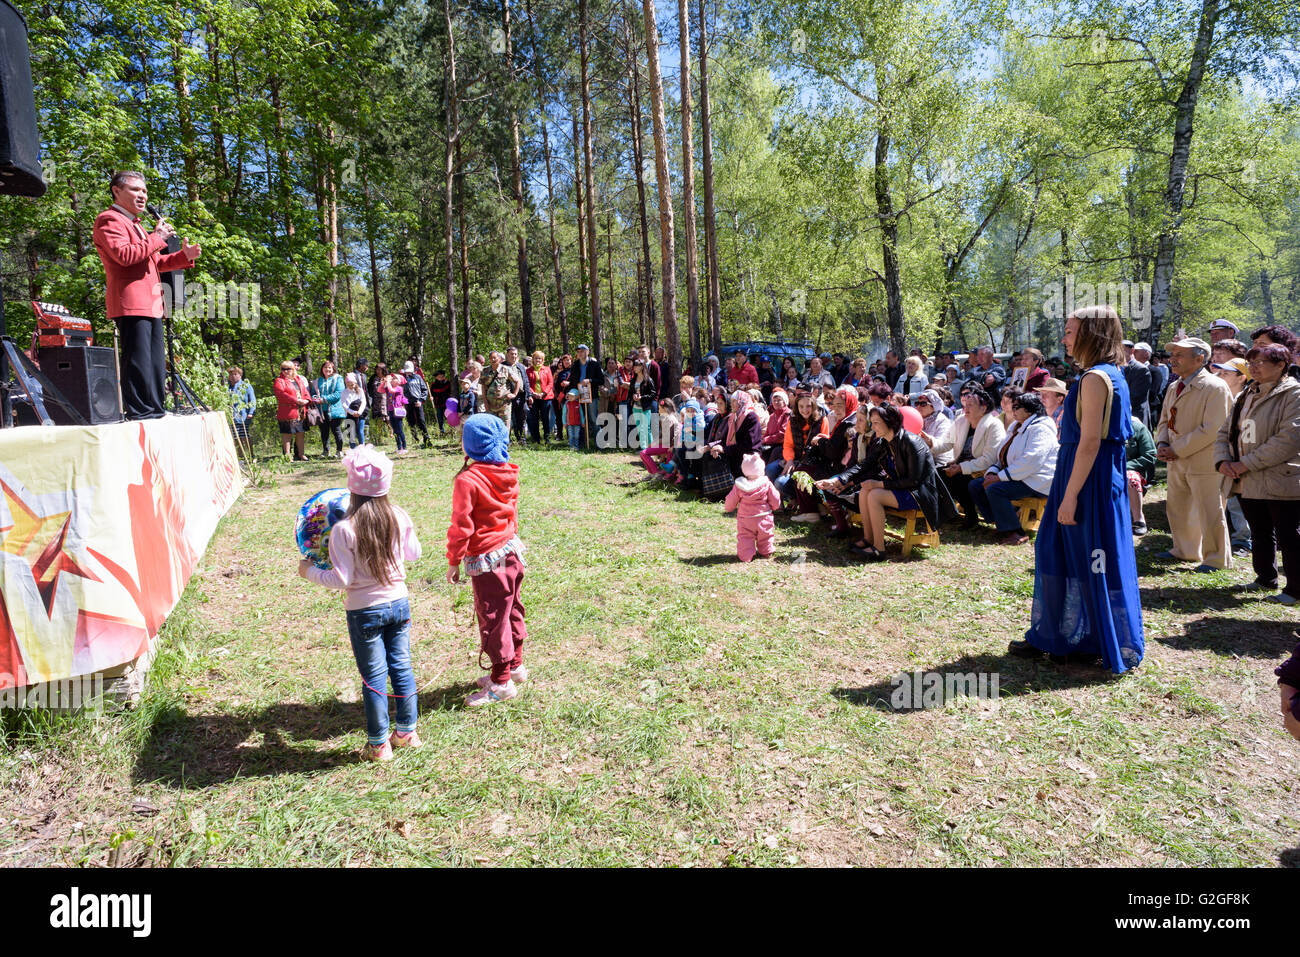 Russian families enjoy a music concert as part of the Victory Day Celebration in a forest on the 9th of May 2016 - Stock Image